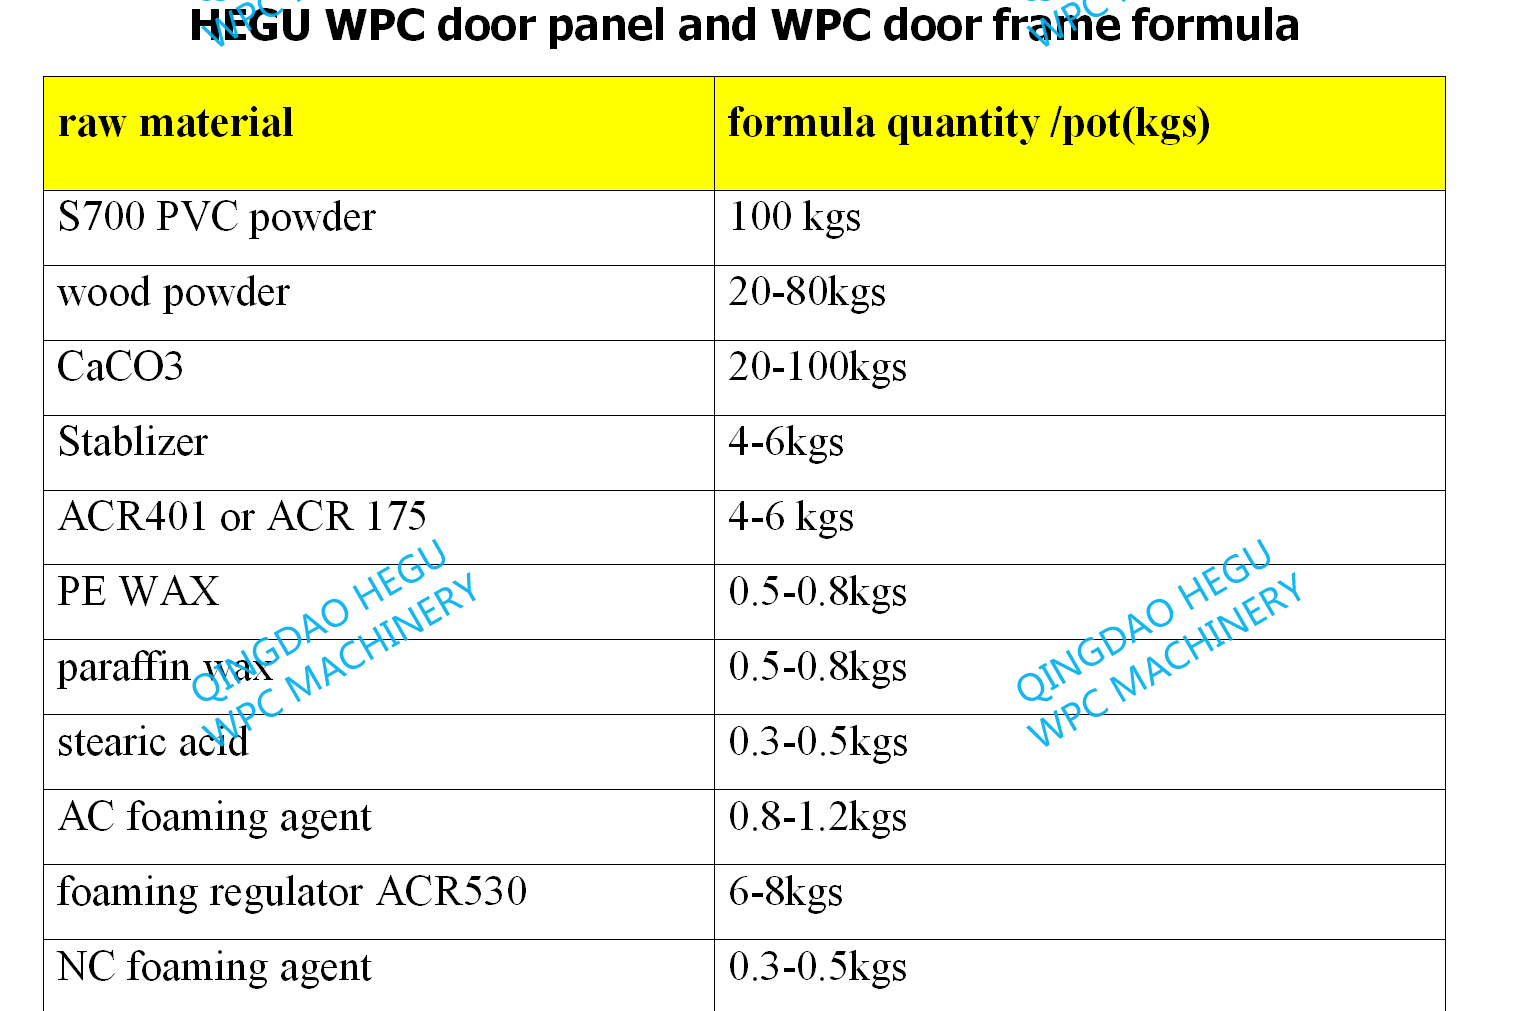 WPC door material and formula